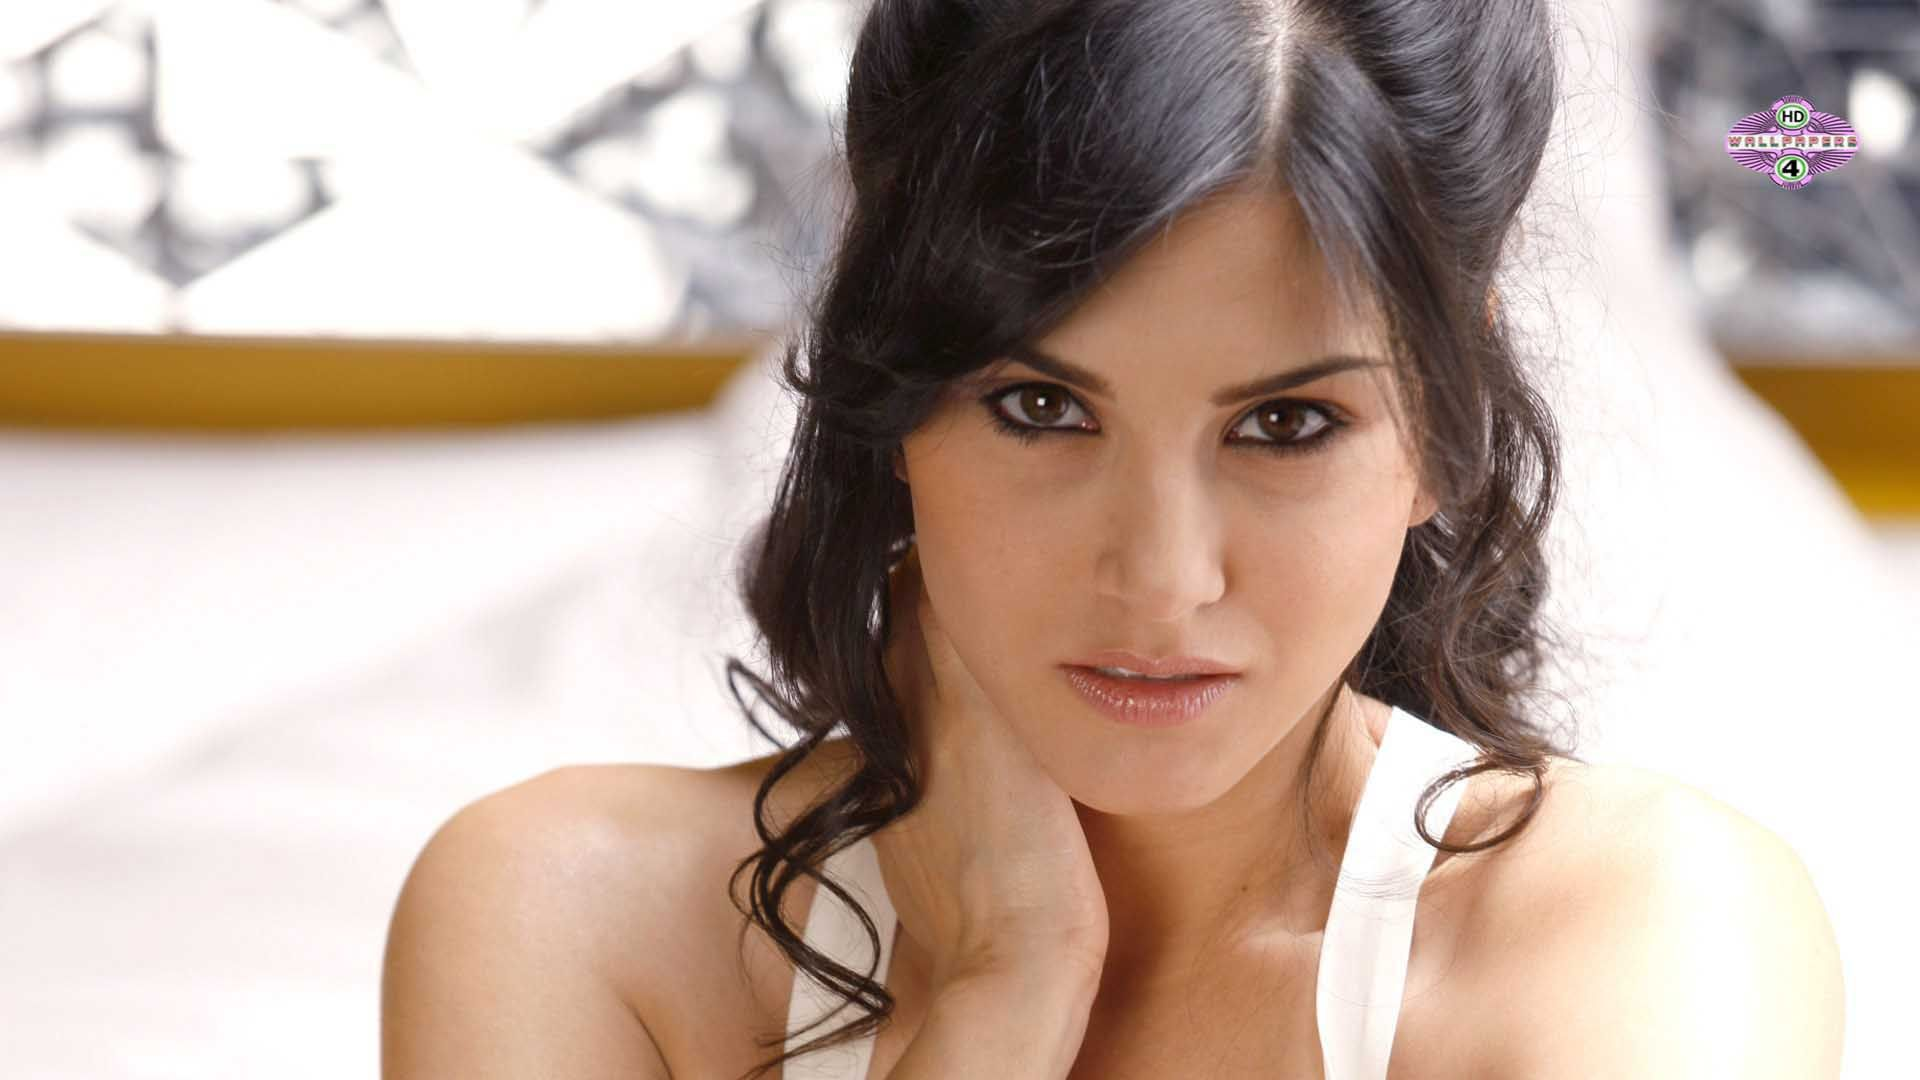 Sunny Leone 4K 2018 HD Wallpaper 4k